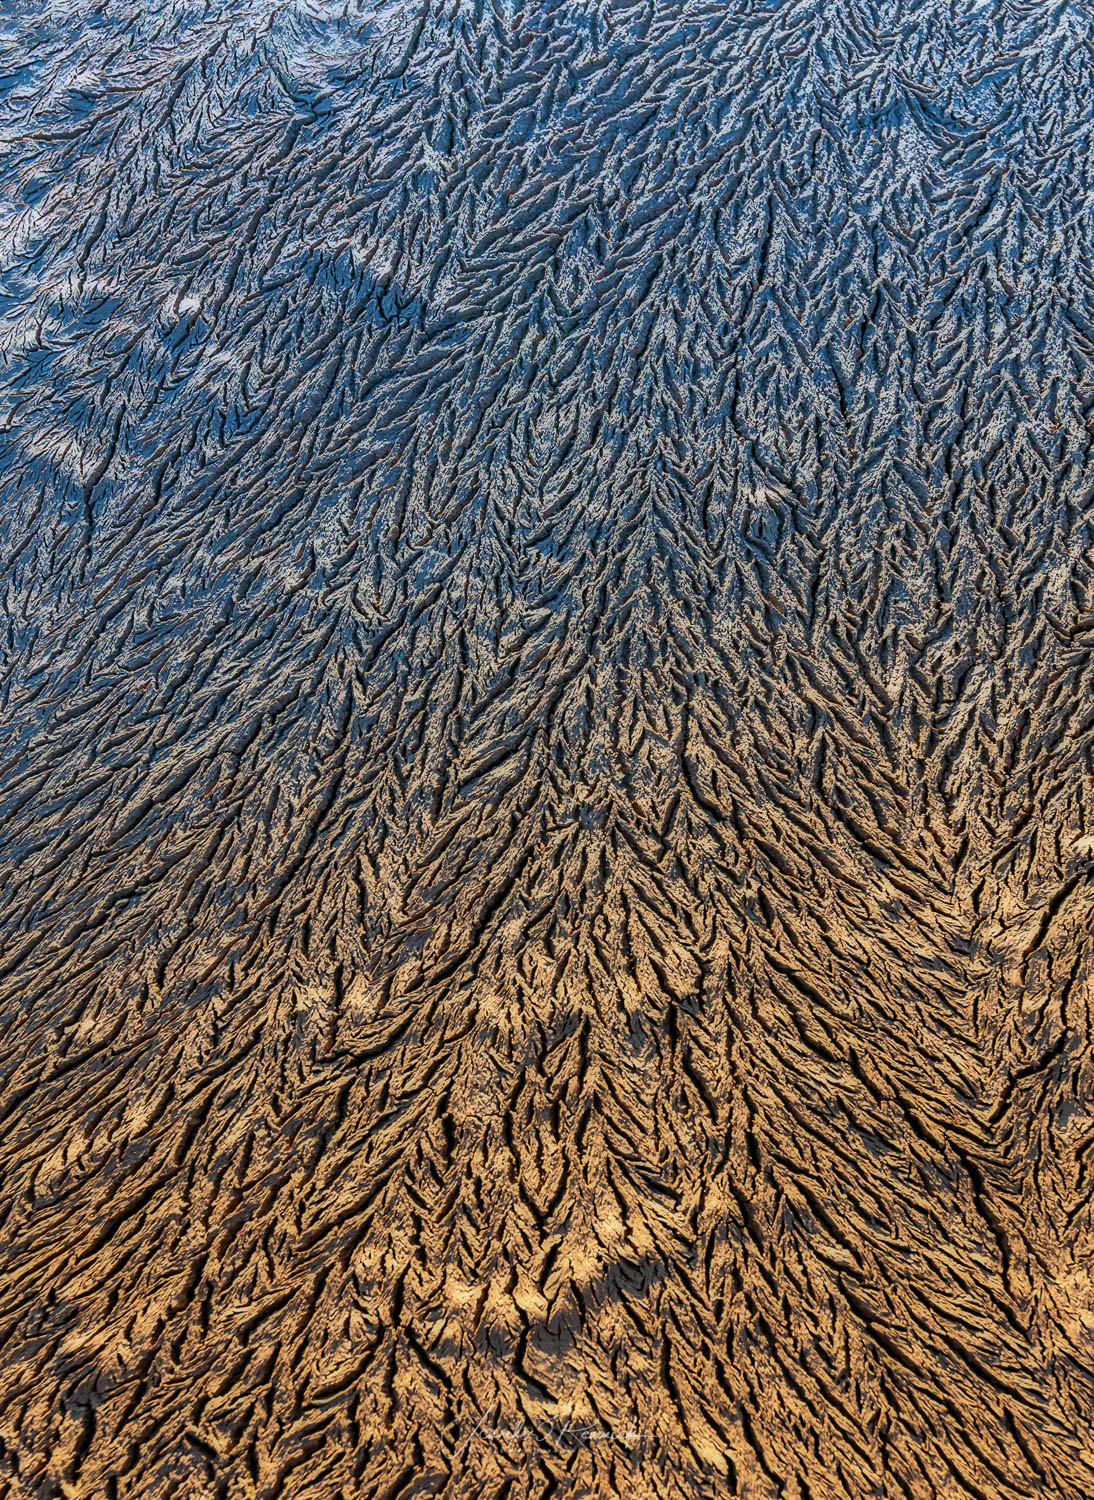 Fissures / Jennifer Renwick / Mud that froze overnight leaves fissures behind creating a mesmerizing pattern. The sun cast a warm glow on the mud before setting